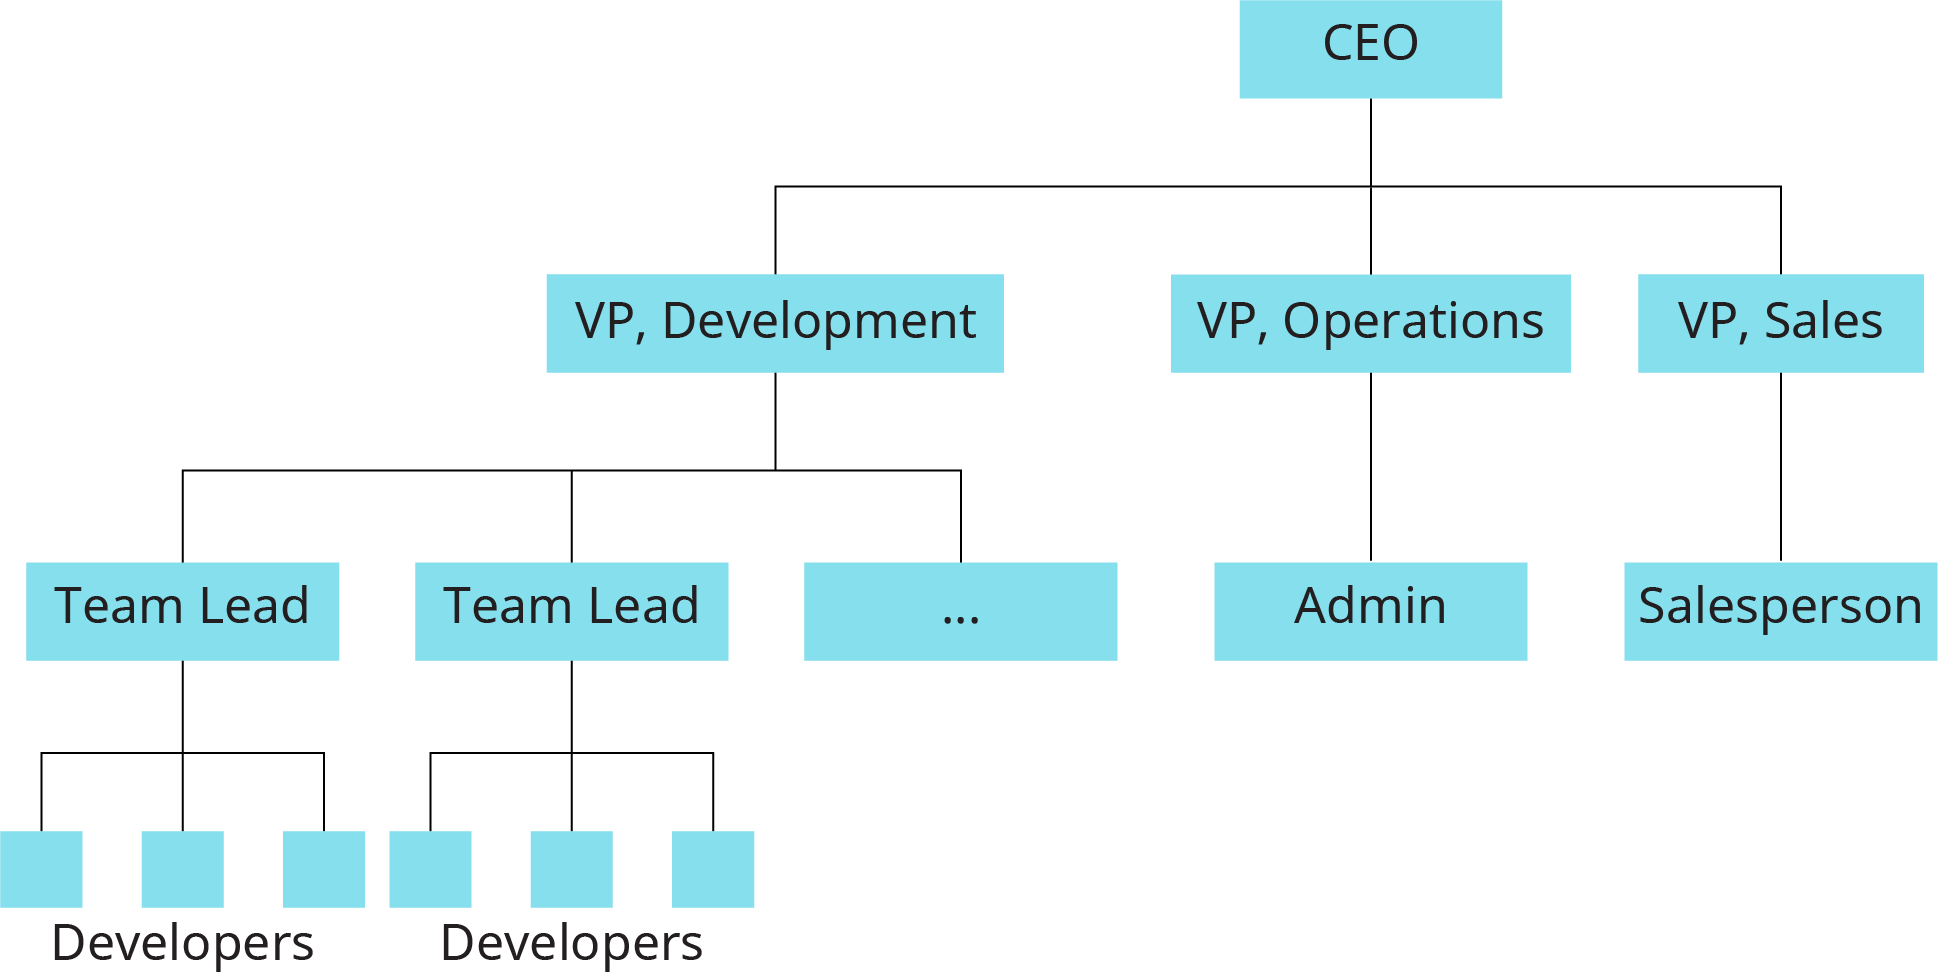 A flowchart shows an example of a formal organizational chart.